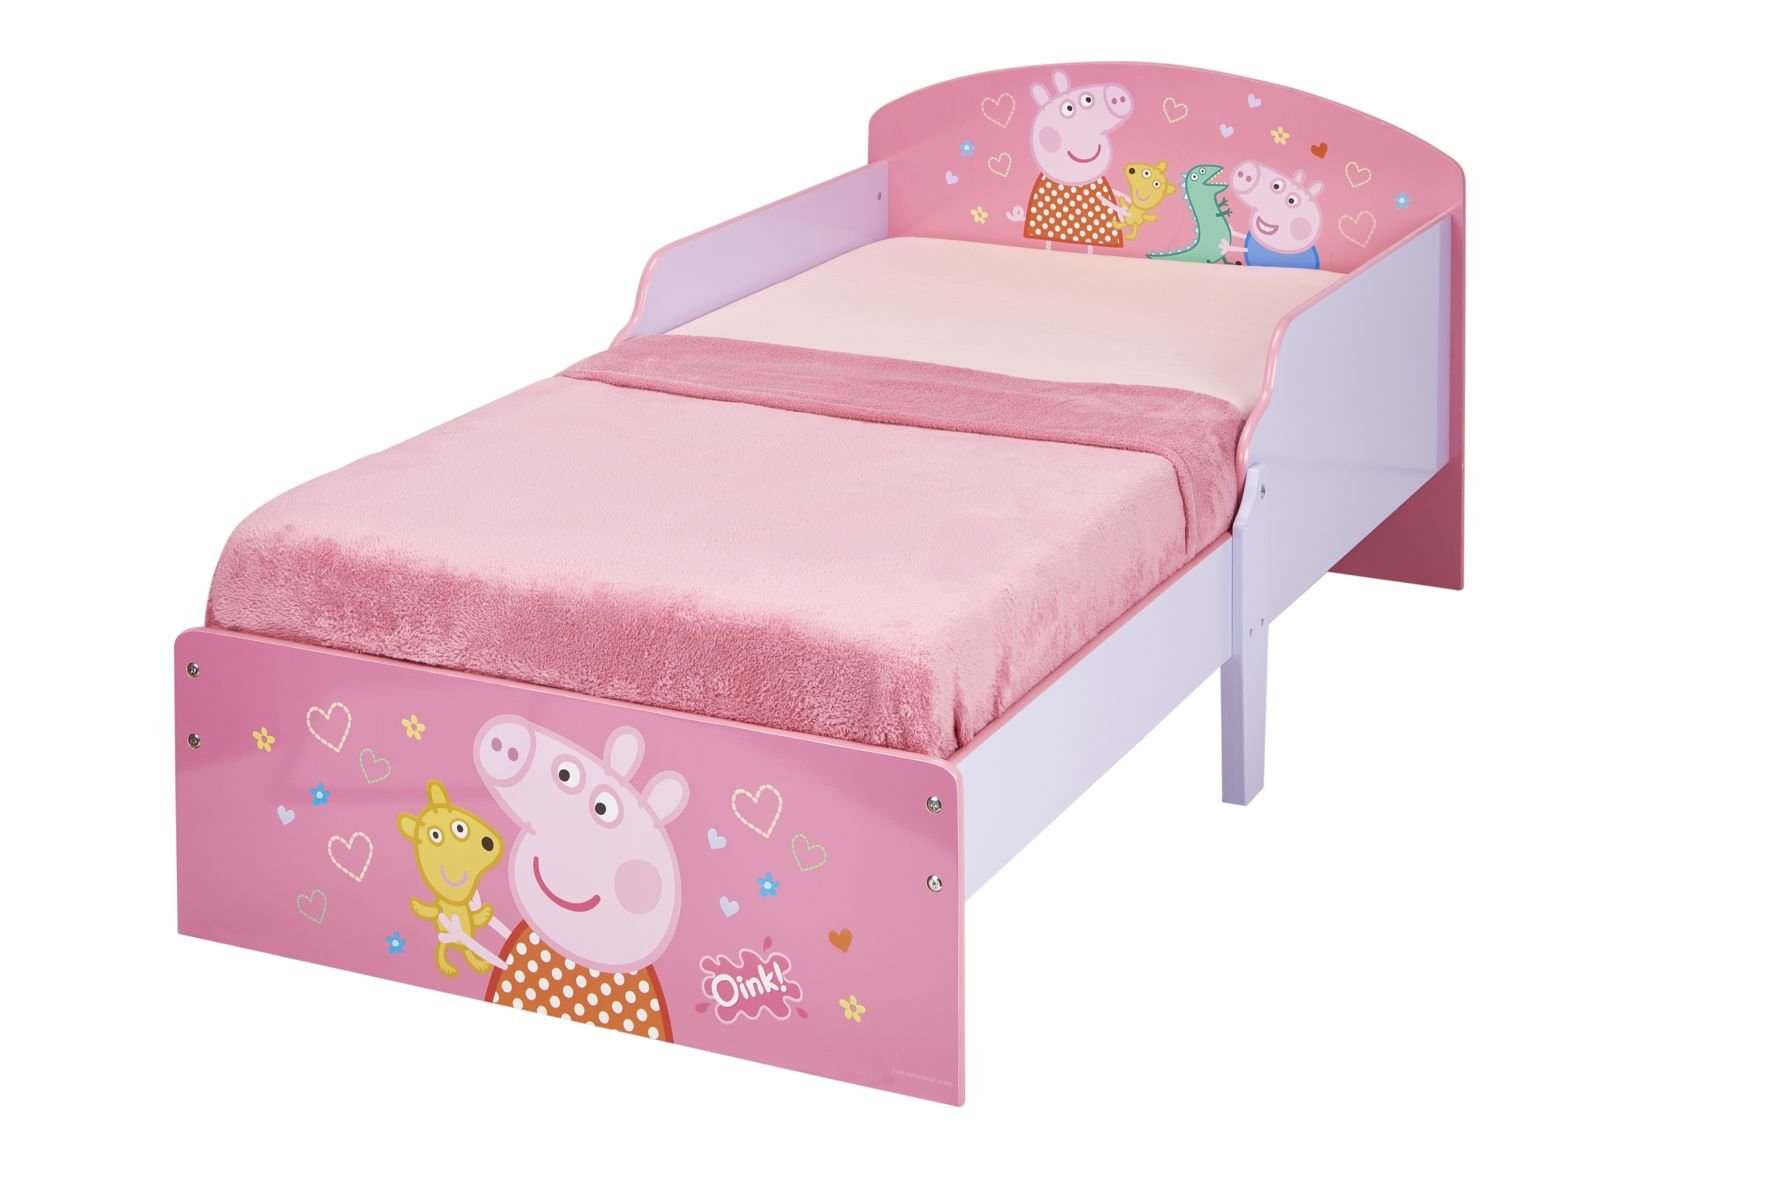 Peppa Pig Kids Toddler Bed by HelloHome Peppa Pig. Snuggle in after a day of play in this Peppa Pig Toddler Bed Perfect size for toddlers, low to the ground with protective and sturdy side guards to keep your little one safe and snug Fits a standard cot bed mattress size 140cm x 70cm, mattress not included. Part of the Peppa Pig bedroom furniture range from HelloHome 20